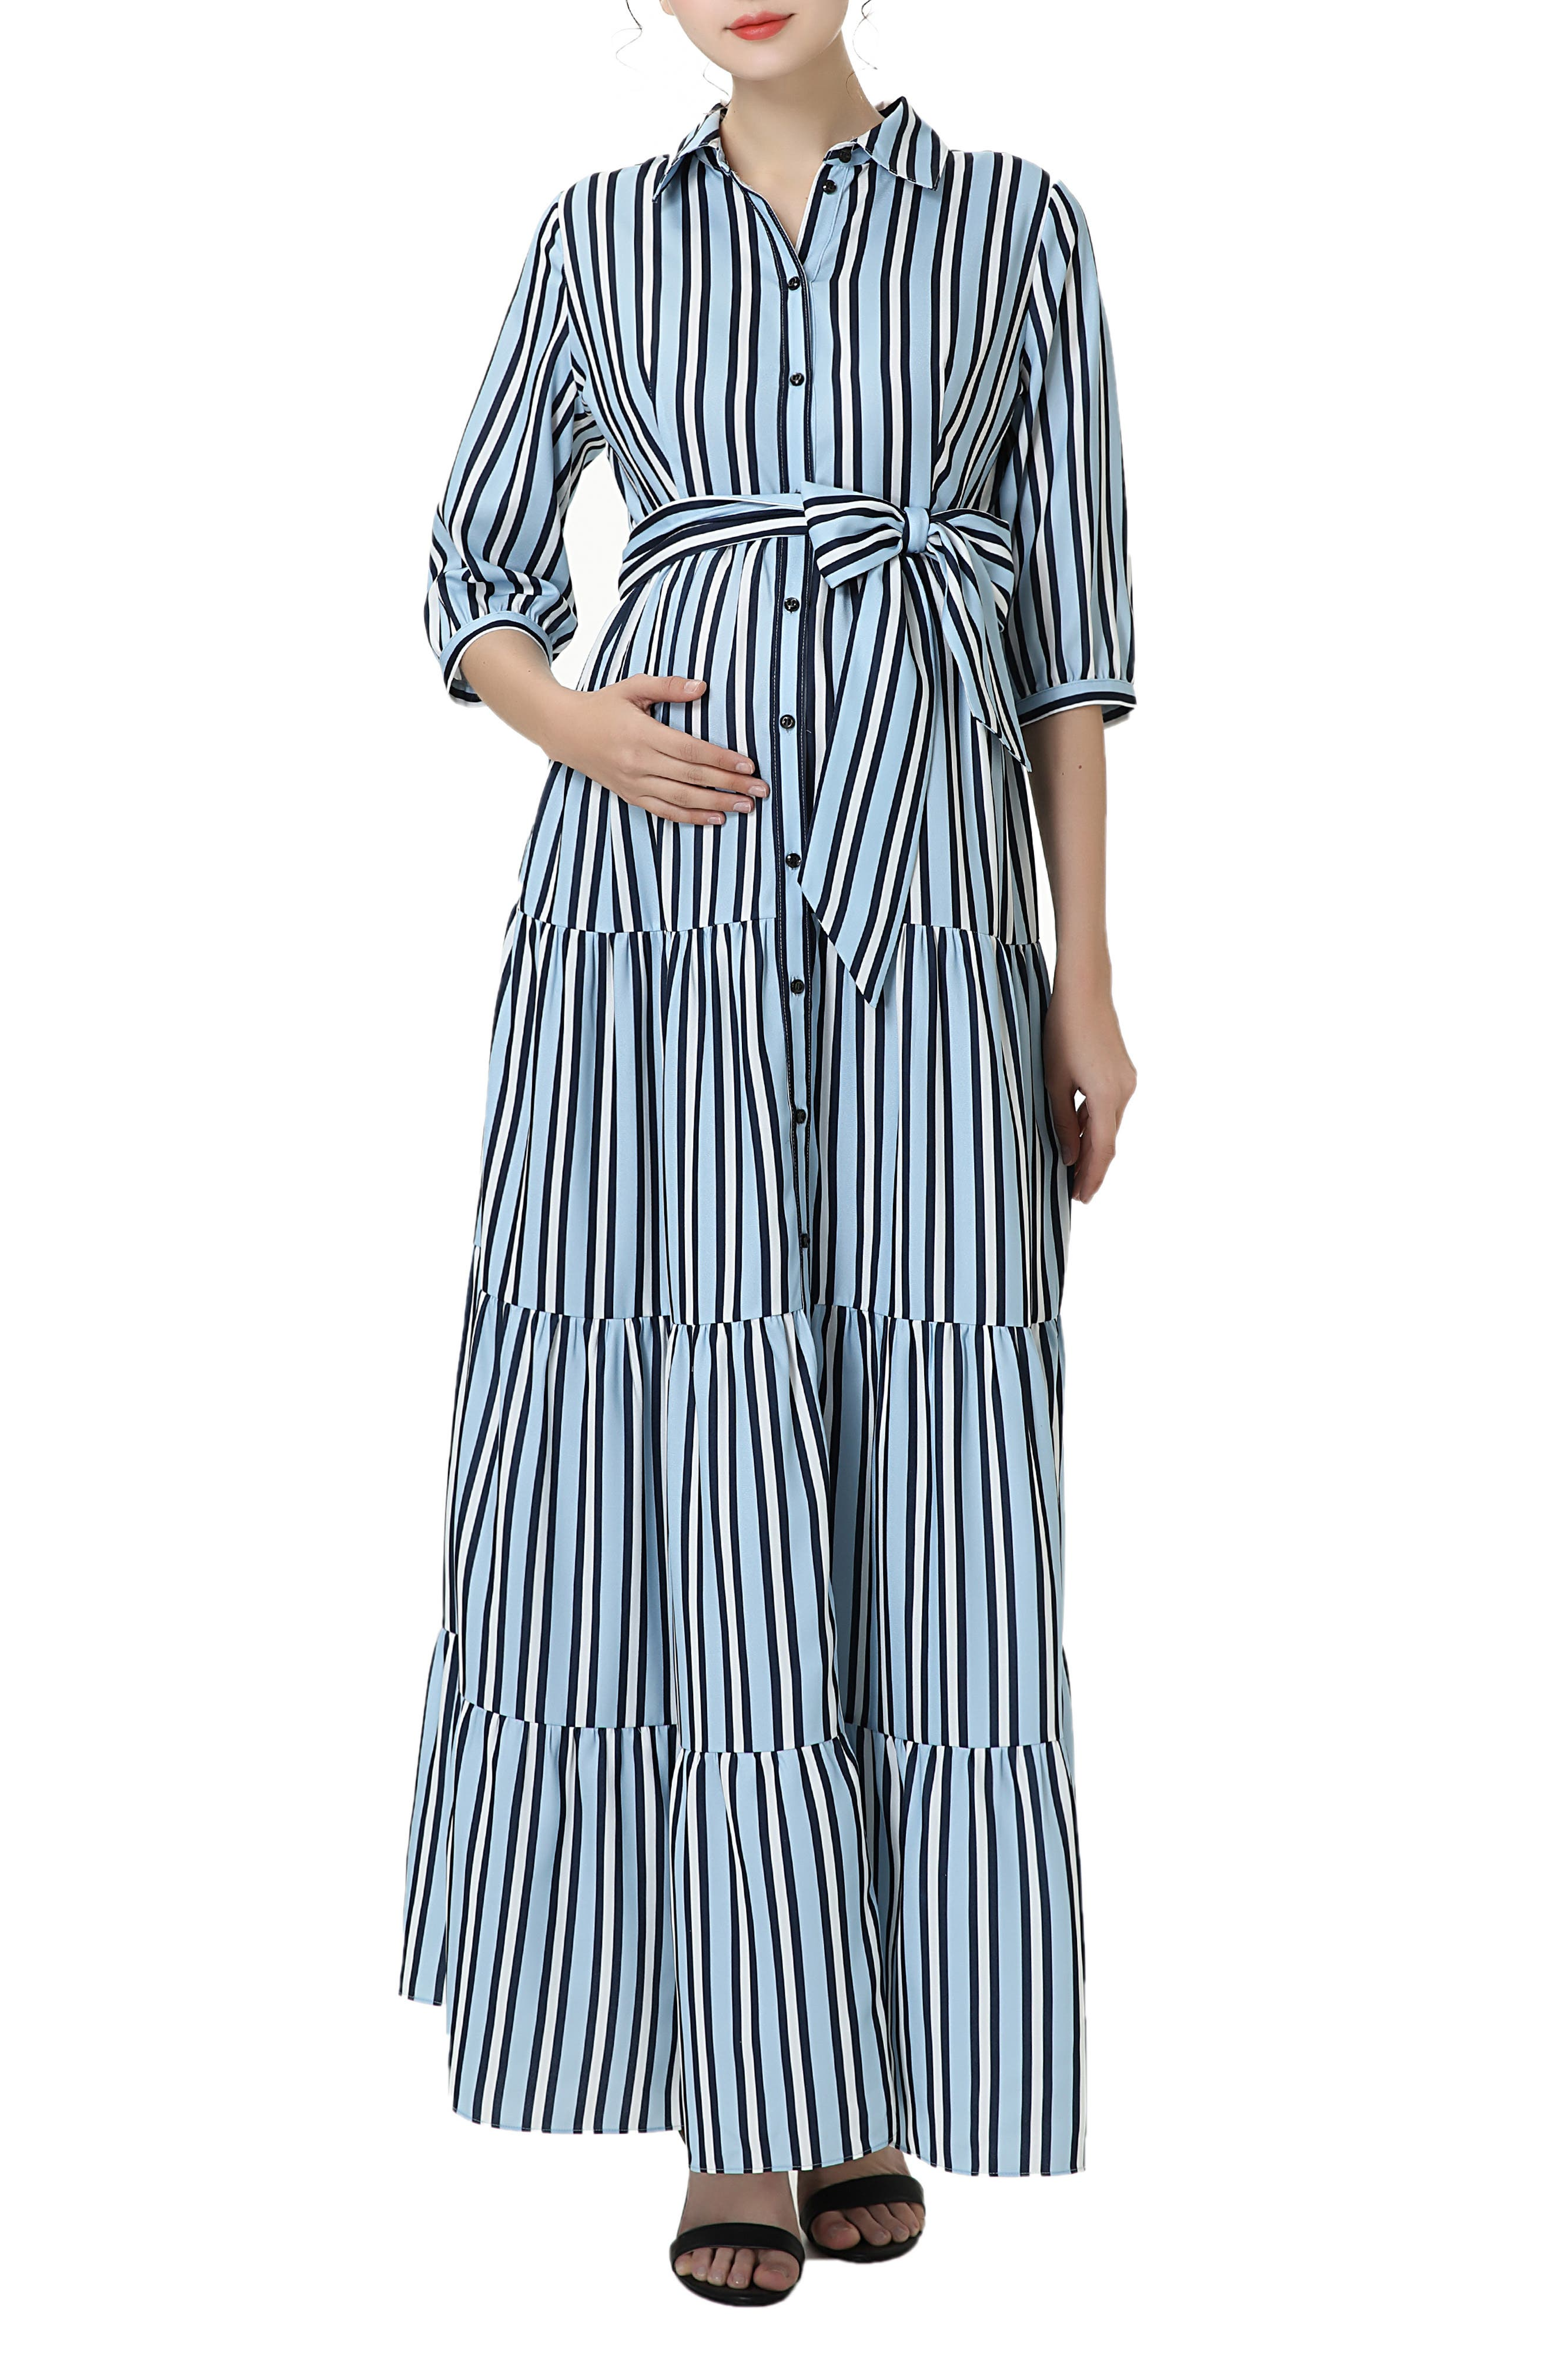 Vintage Maternity Dresses and Clothes Womens Kimi And Kai Ruby Stripe Belted Maternitynursing Maxi Dress $118.00 AT vintagedancer.com